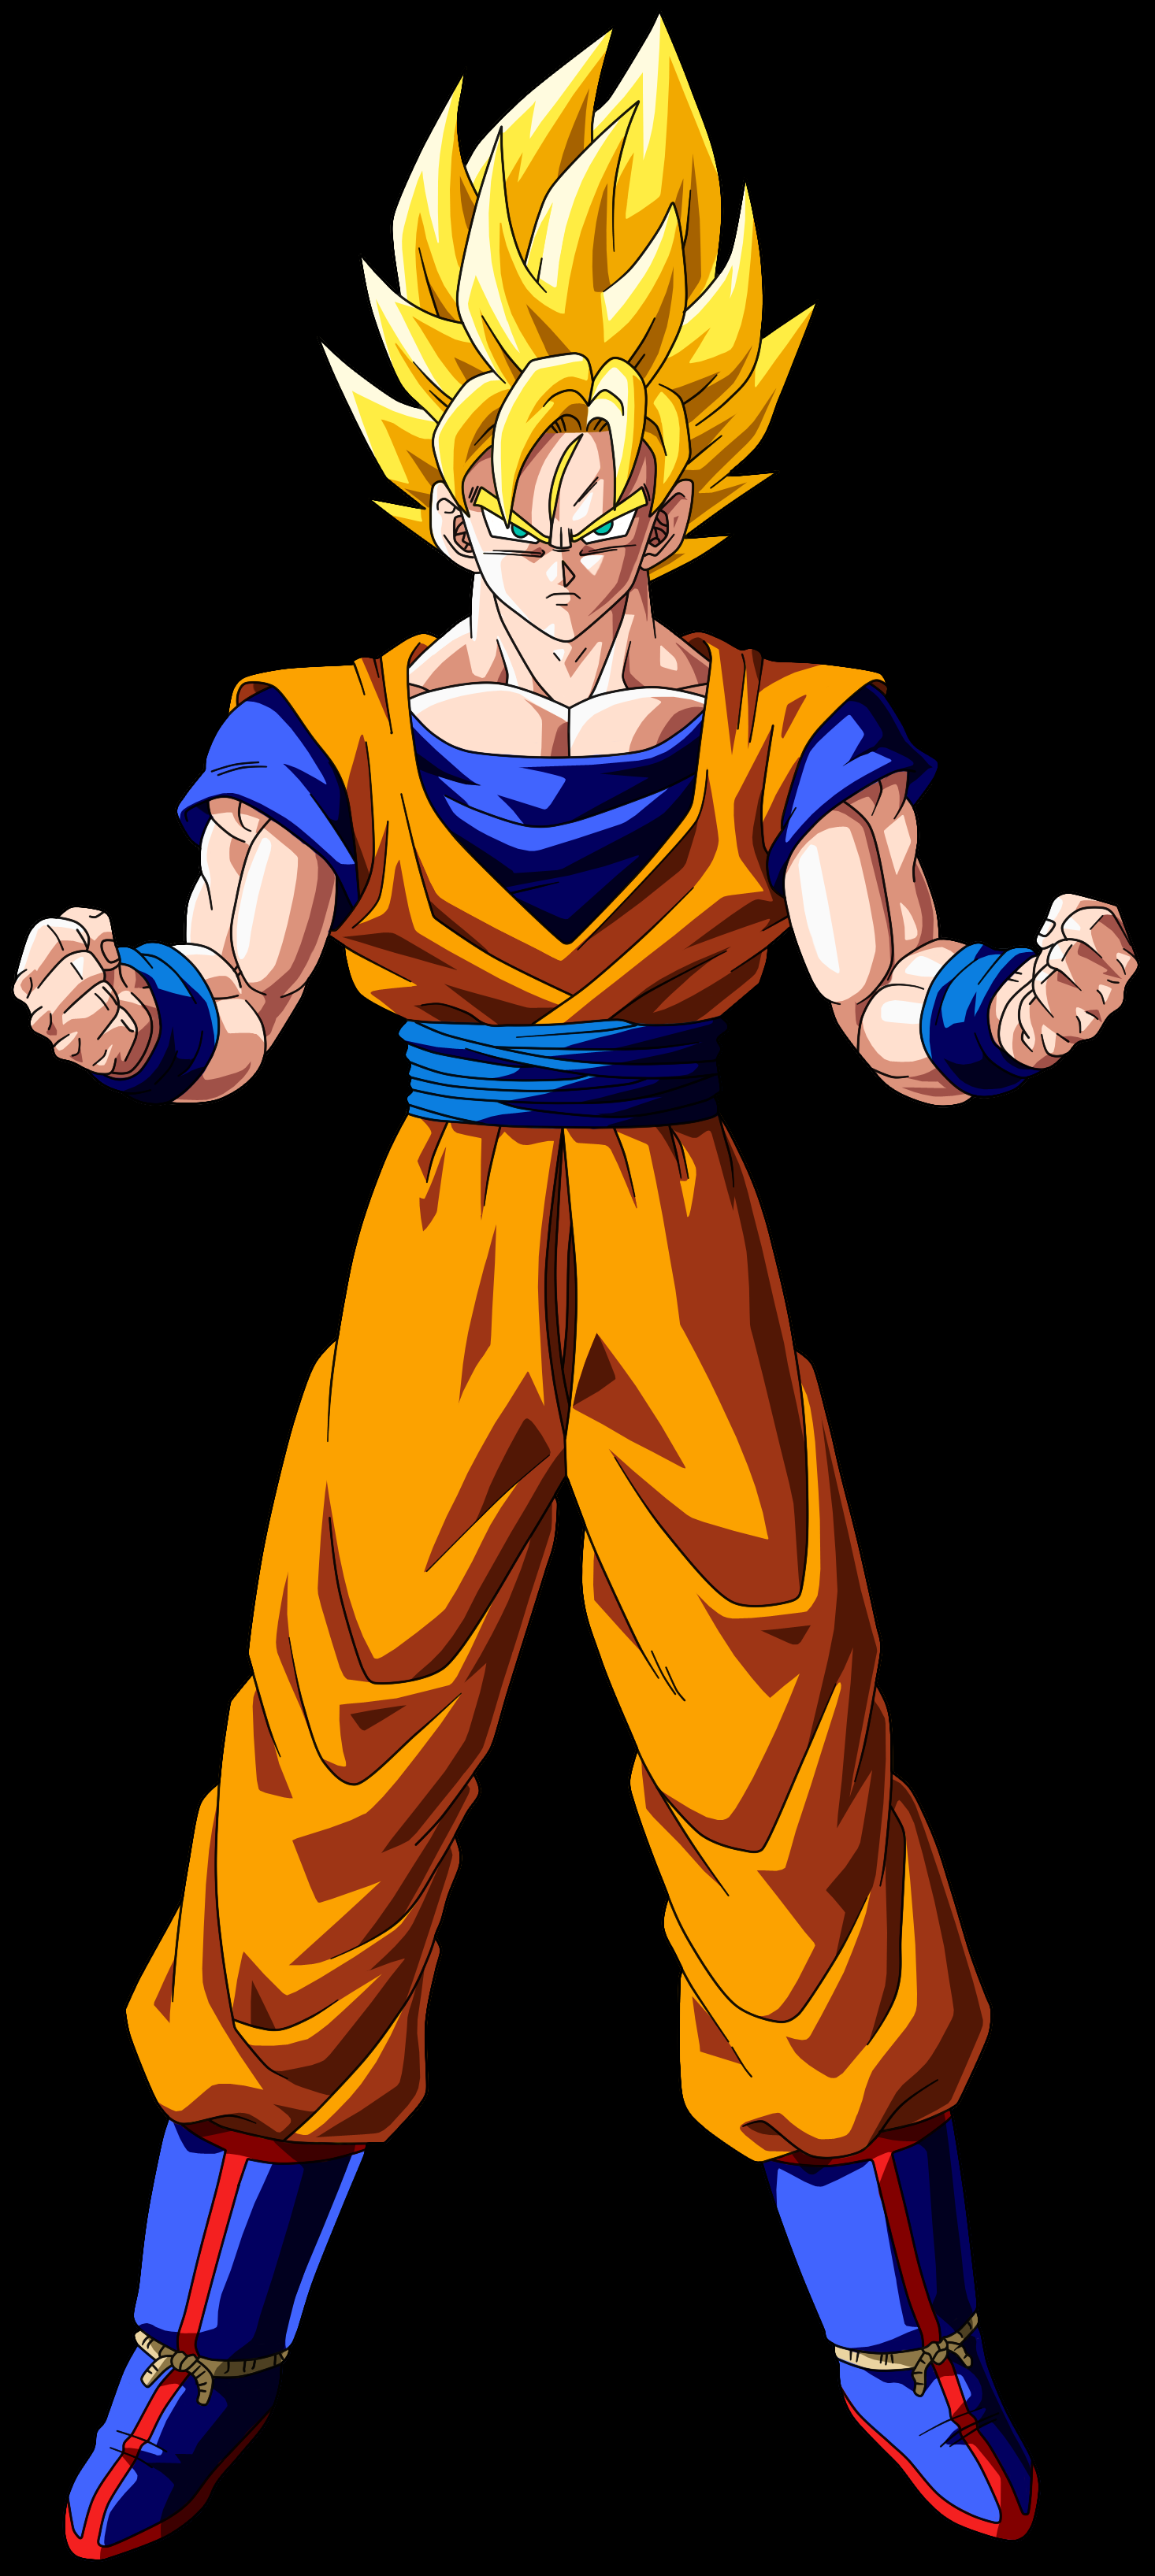 Son goku dbzbd dragon ball fanon wiki - Dragon ball z goku son ...